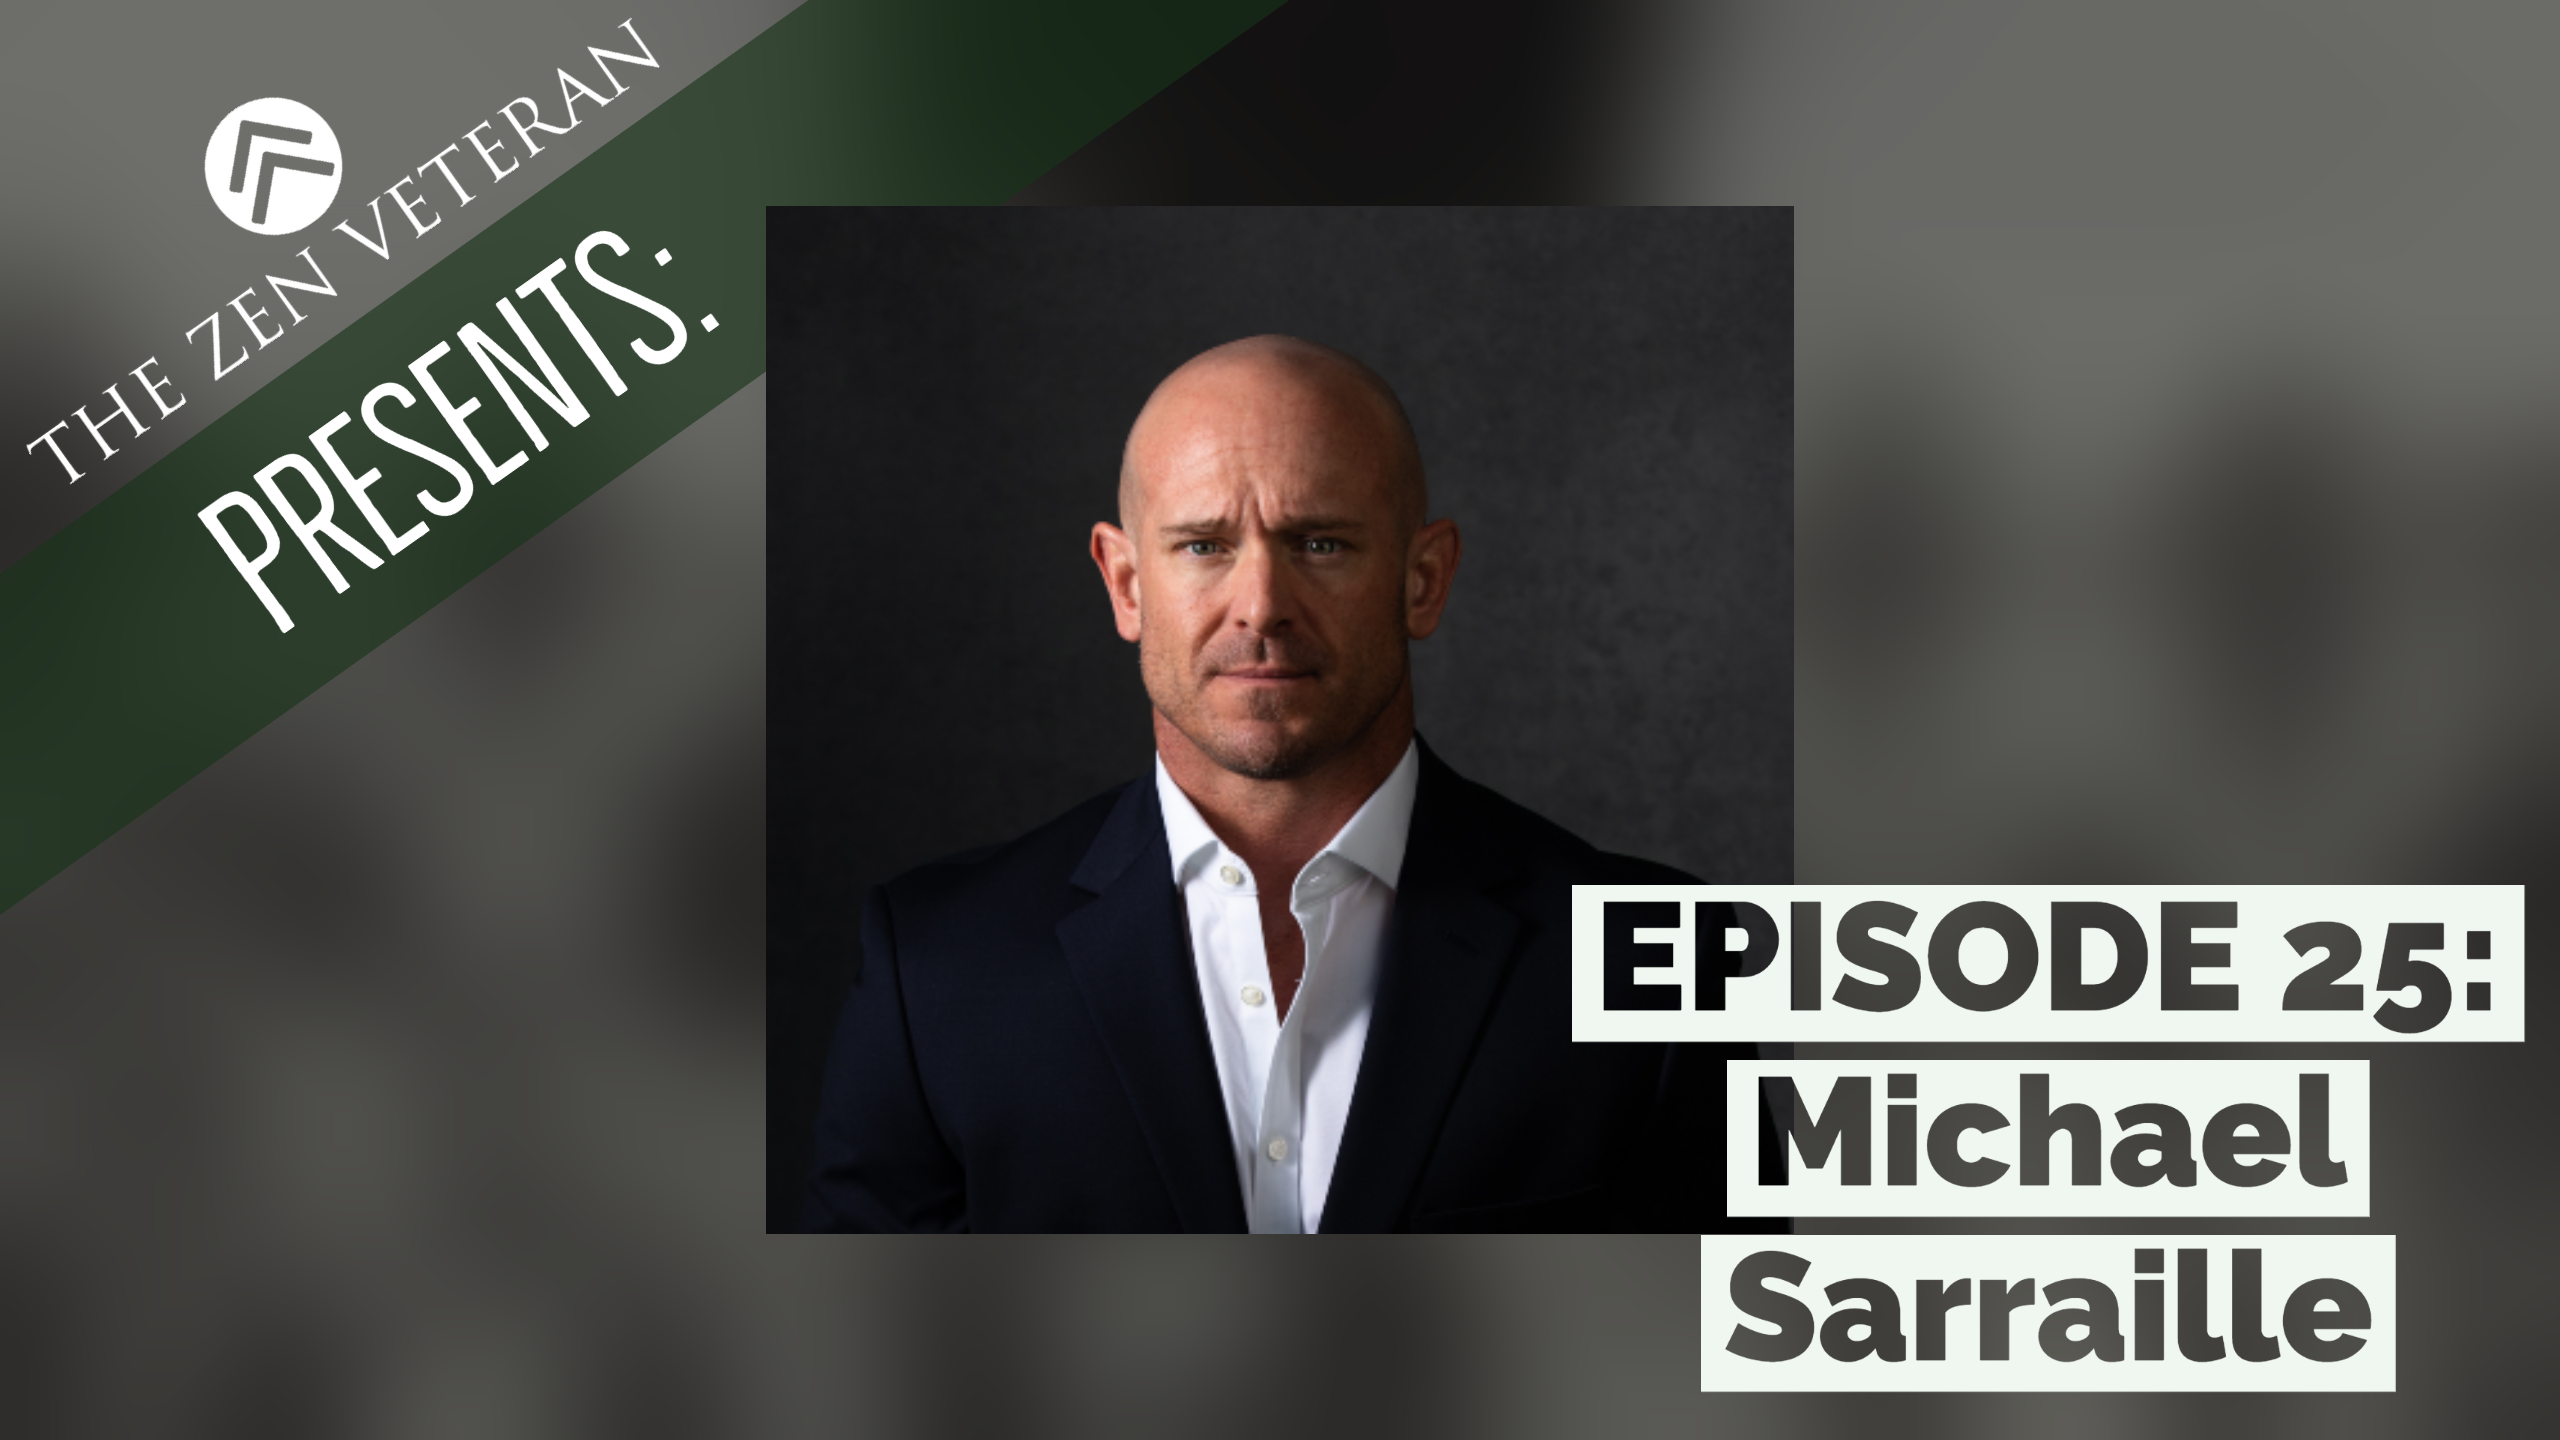 Michael Sarraille – Impact Over Money, Chipping Away at Complexity, and Why Fortune 500 Companies Might Not be Right for You (Episode #25)